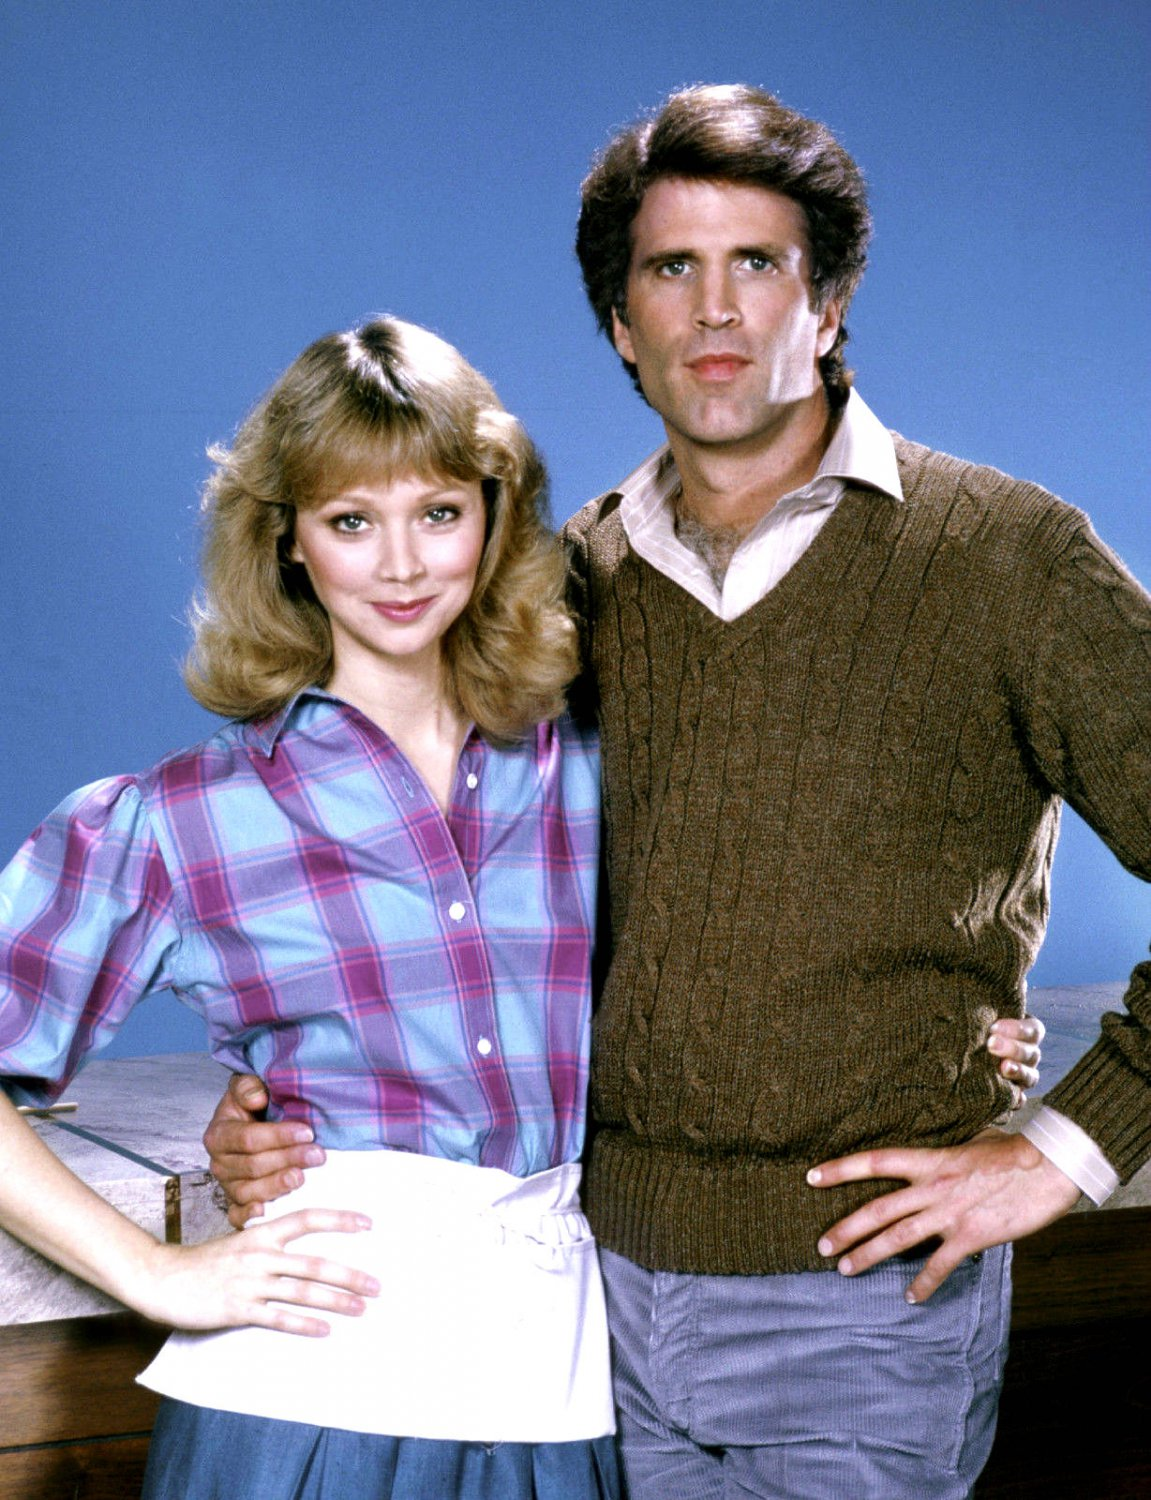 SHELLEY LONG AND TED DANSON IN TV SHOW 'CHEERS' - 8X10 PUBLICITY PHOTO (NN-139)